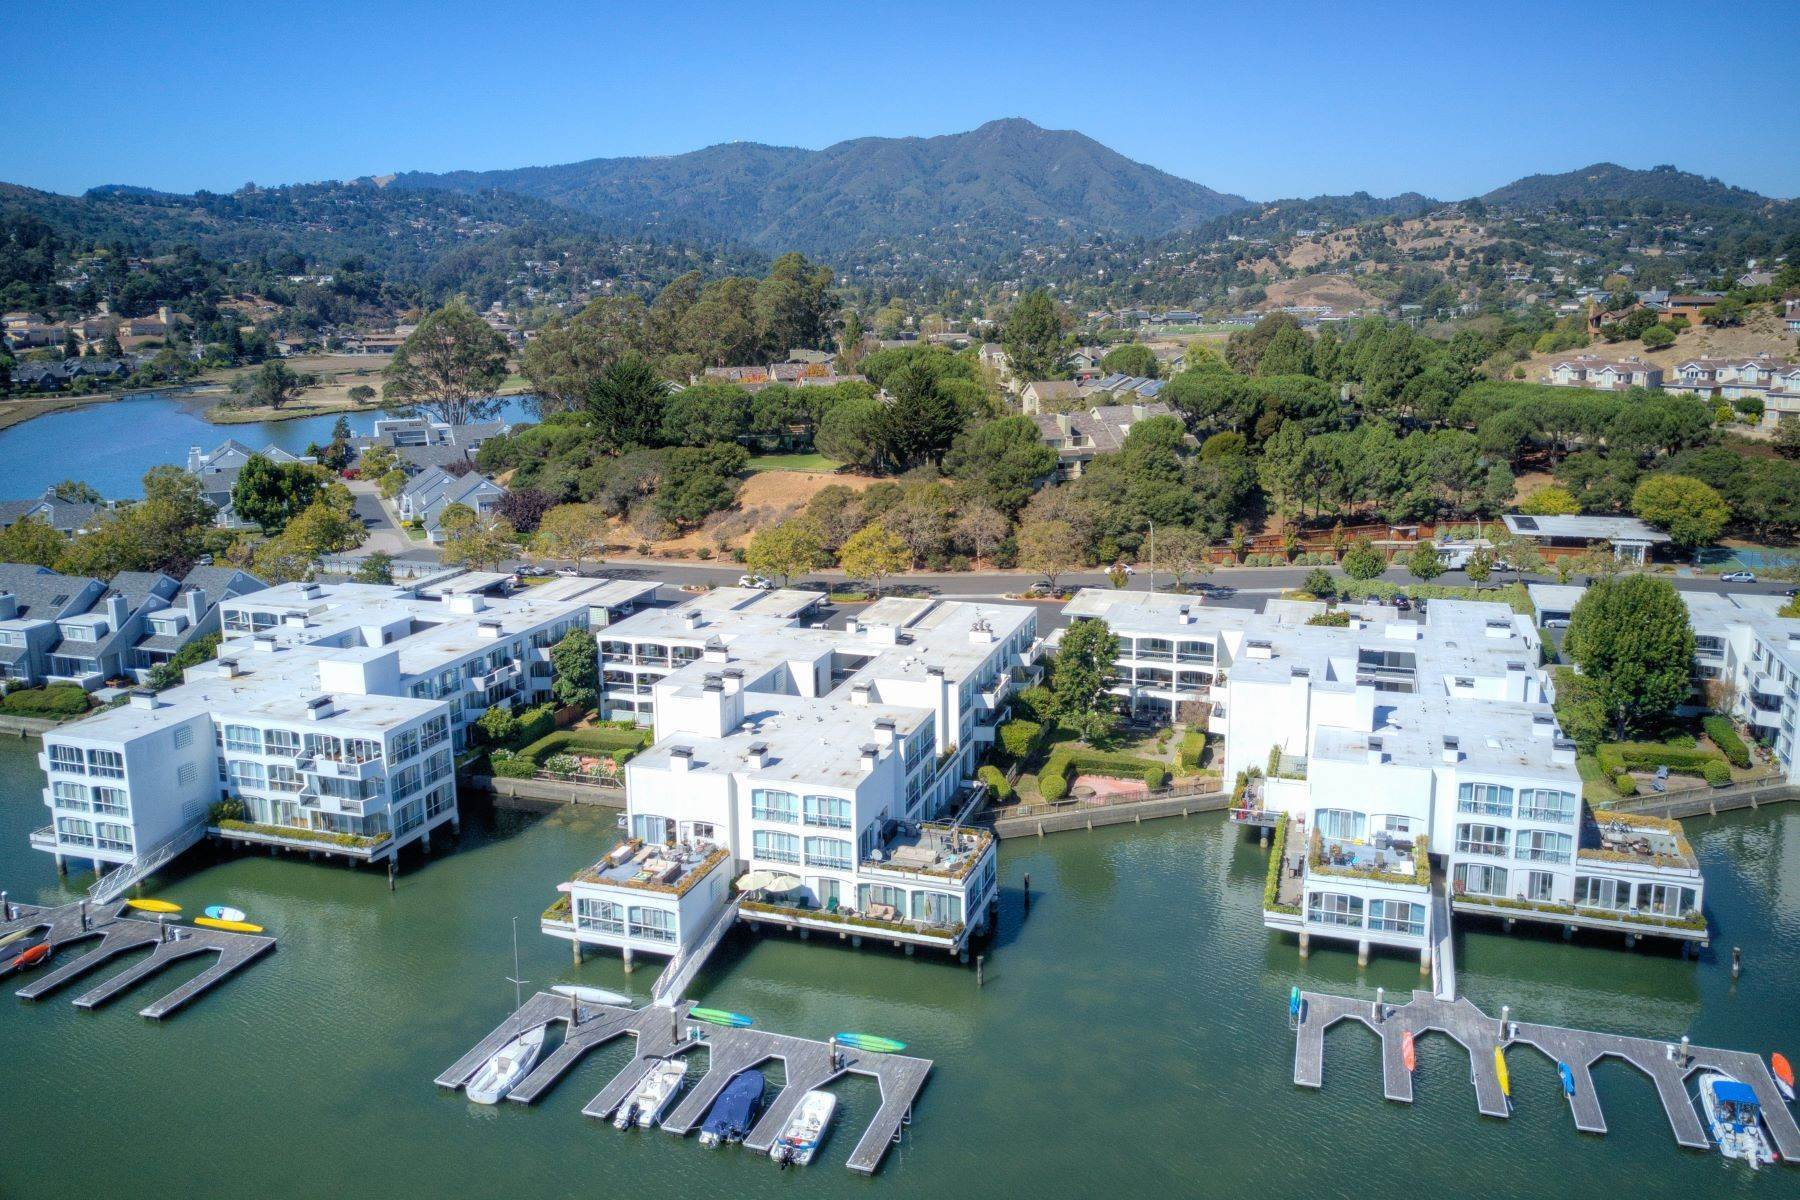 Condominiums for Sale at Shelter Bay Stunning Remodel, Private Yard, Spacious Deck Overlooking the Water! 5107 Shelter Bay Avenue Mill Valley, California 94941 United States